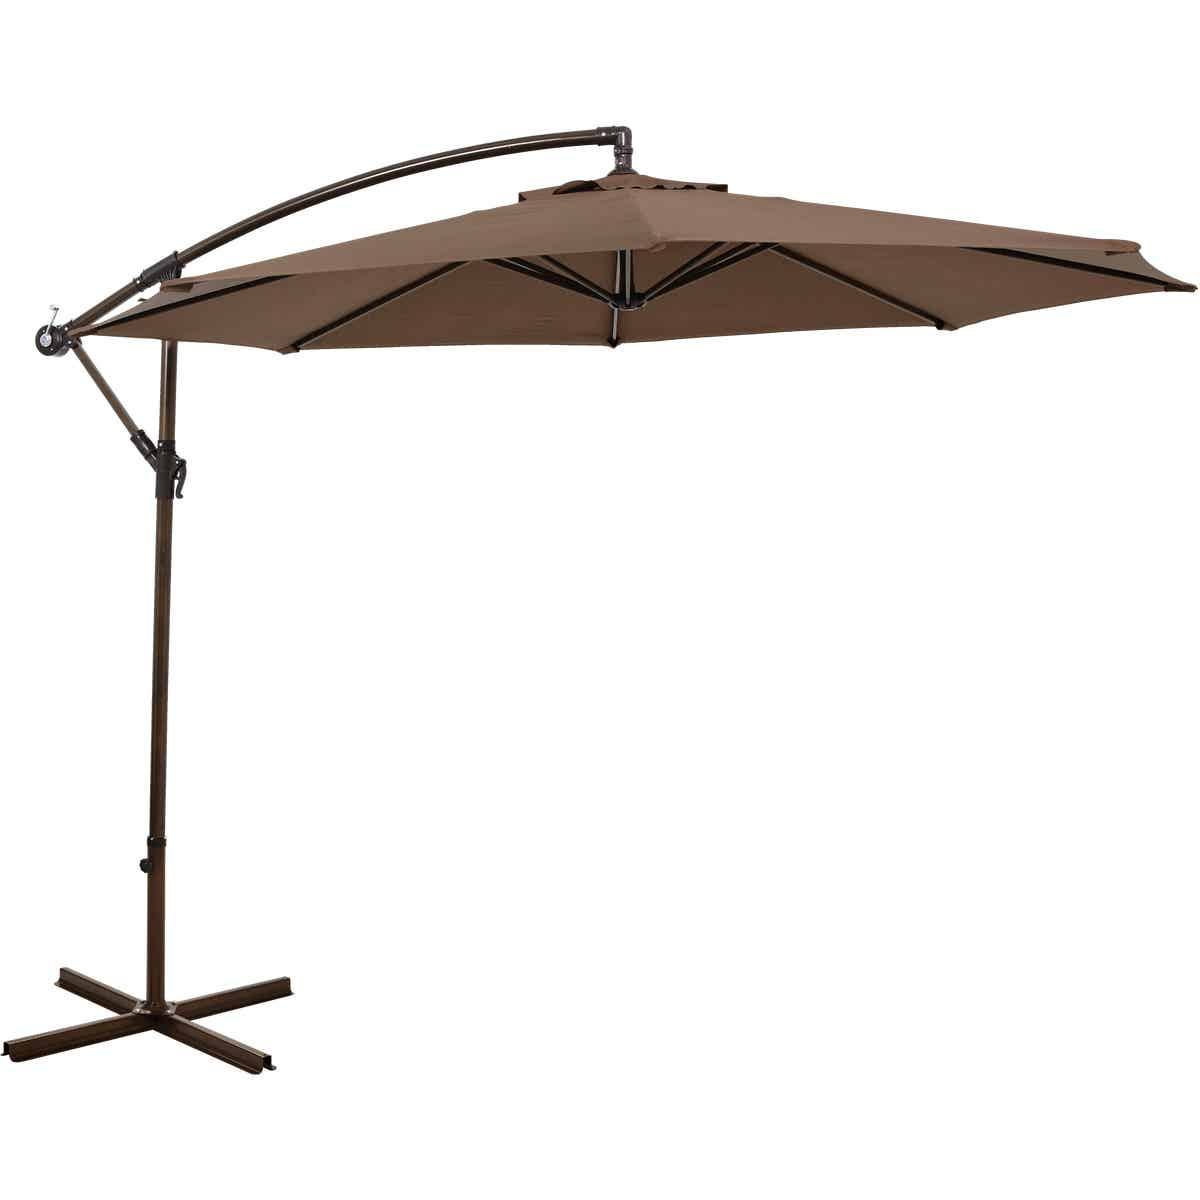 https www jerryshardware com shop outdoor living patio furniture patio umbrellas and bases patio umbrella outdoor expressions 10 ft round steel offset brown patio umbrella